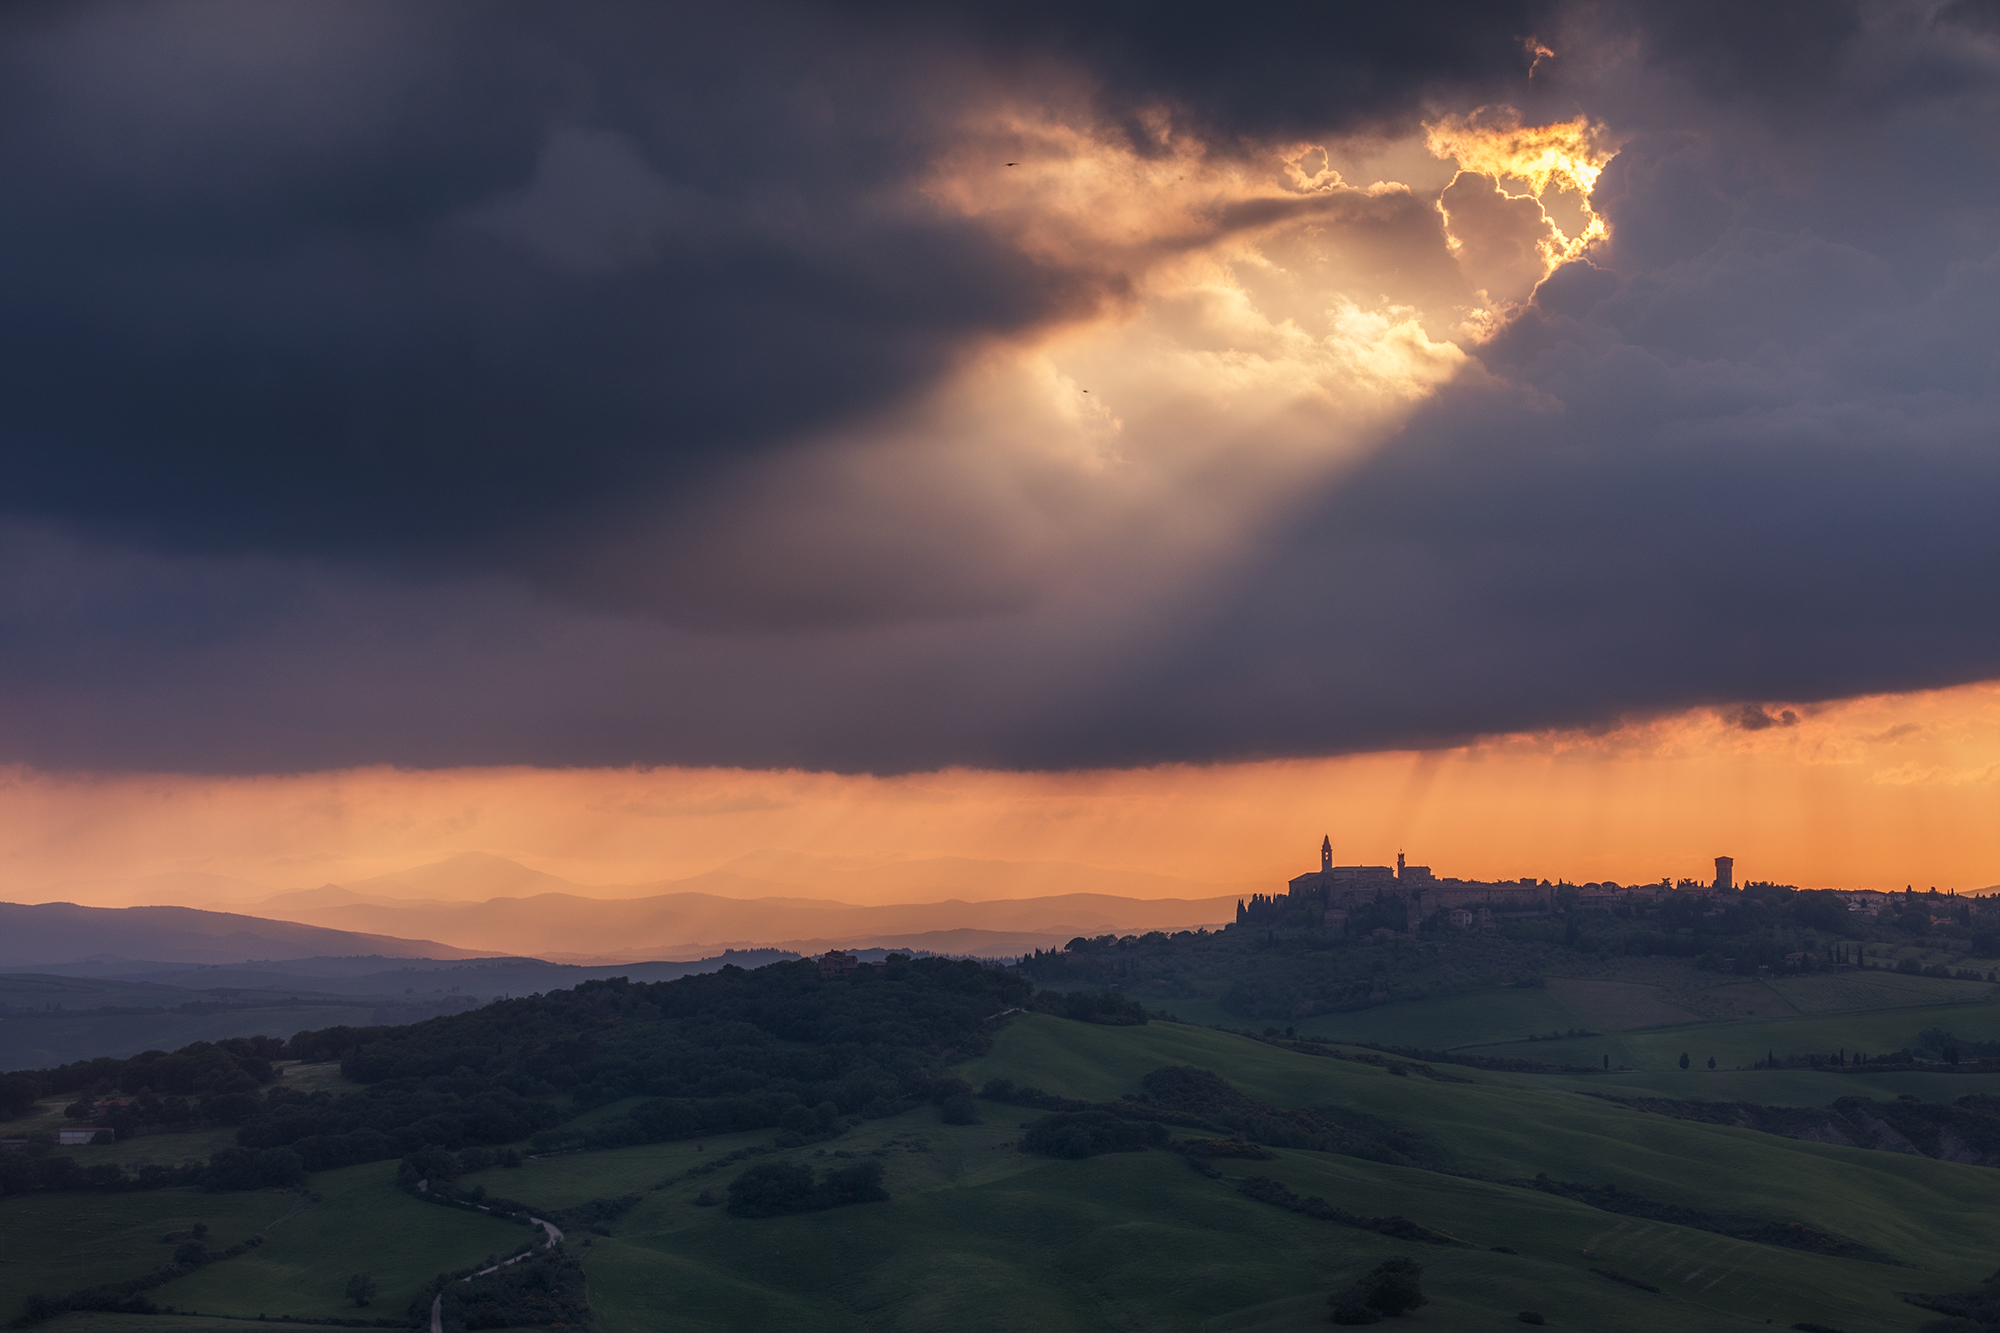 A Stormy Sunset Over Pienza